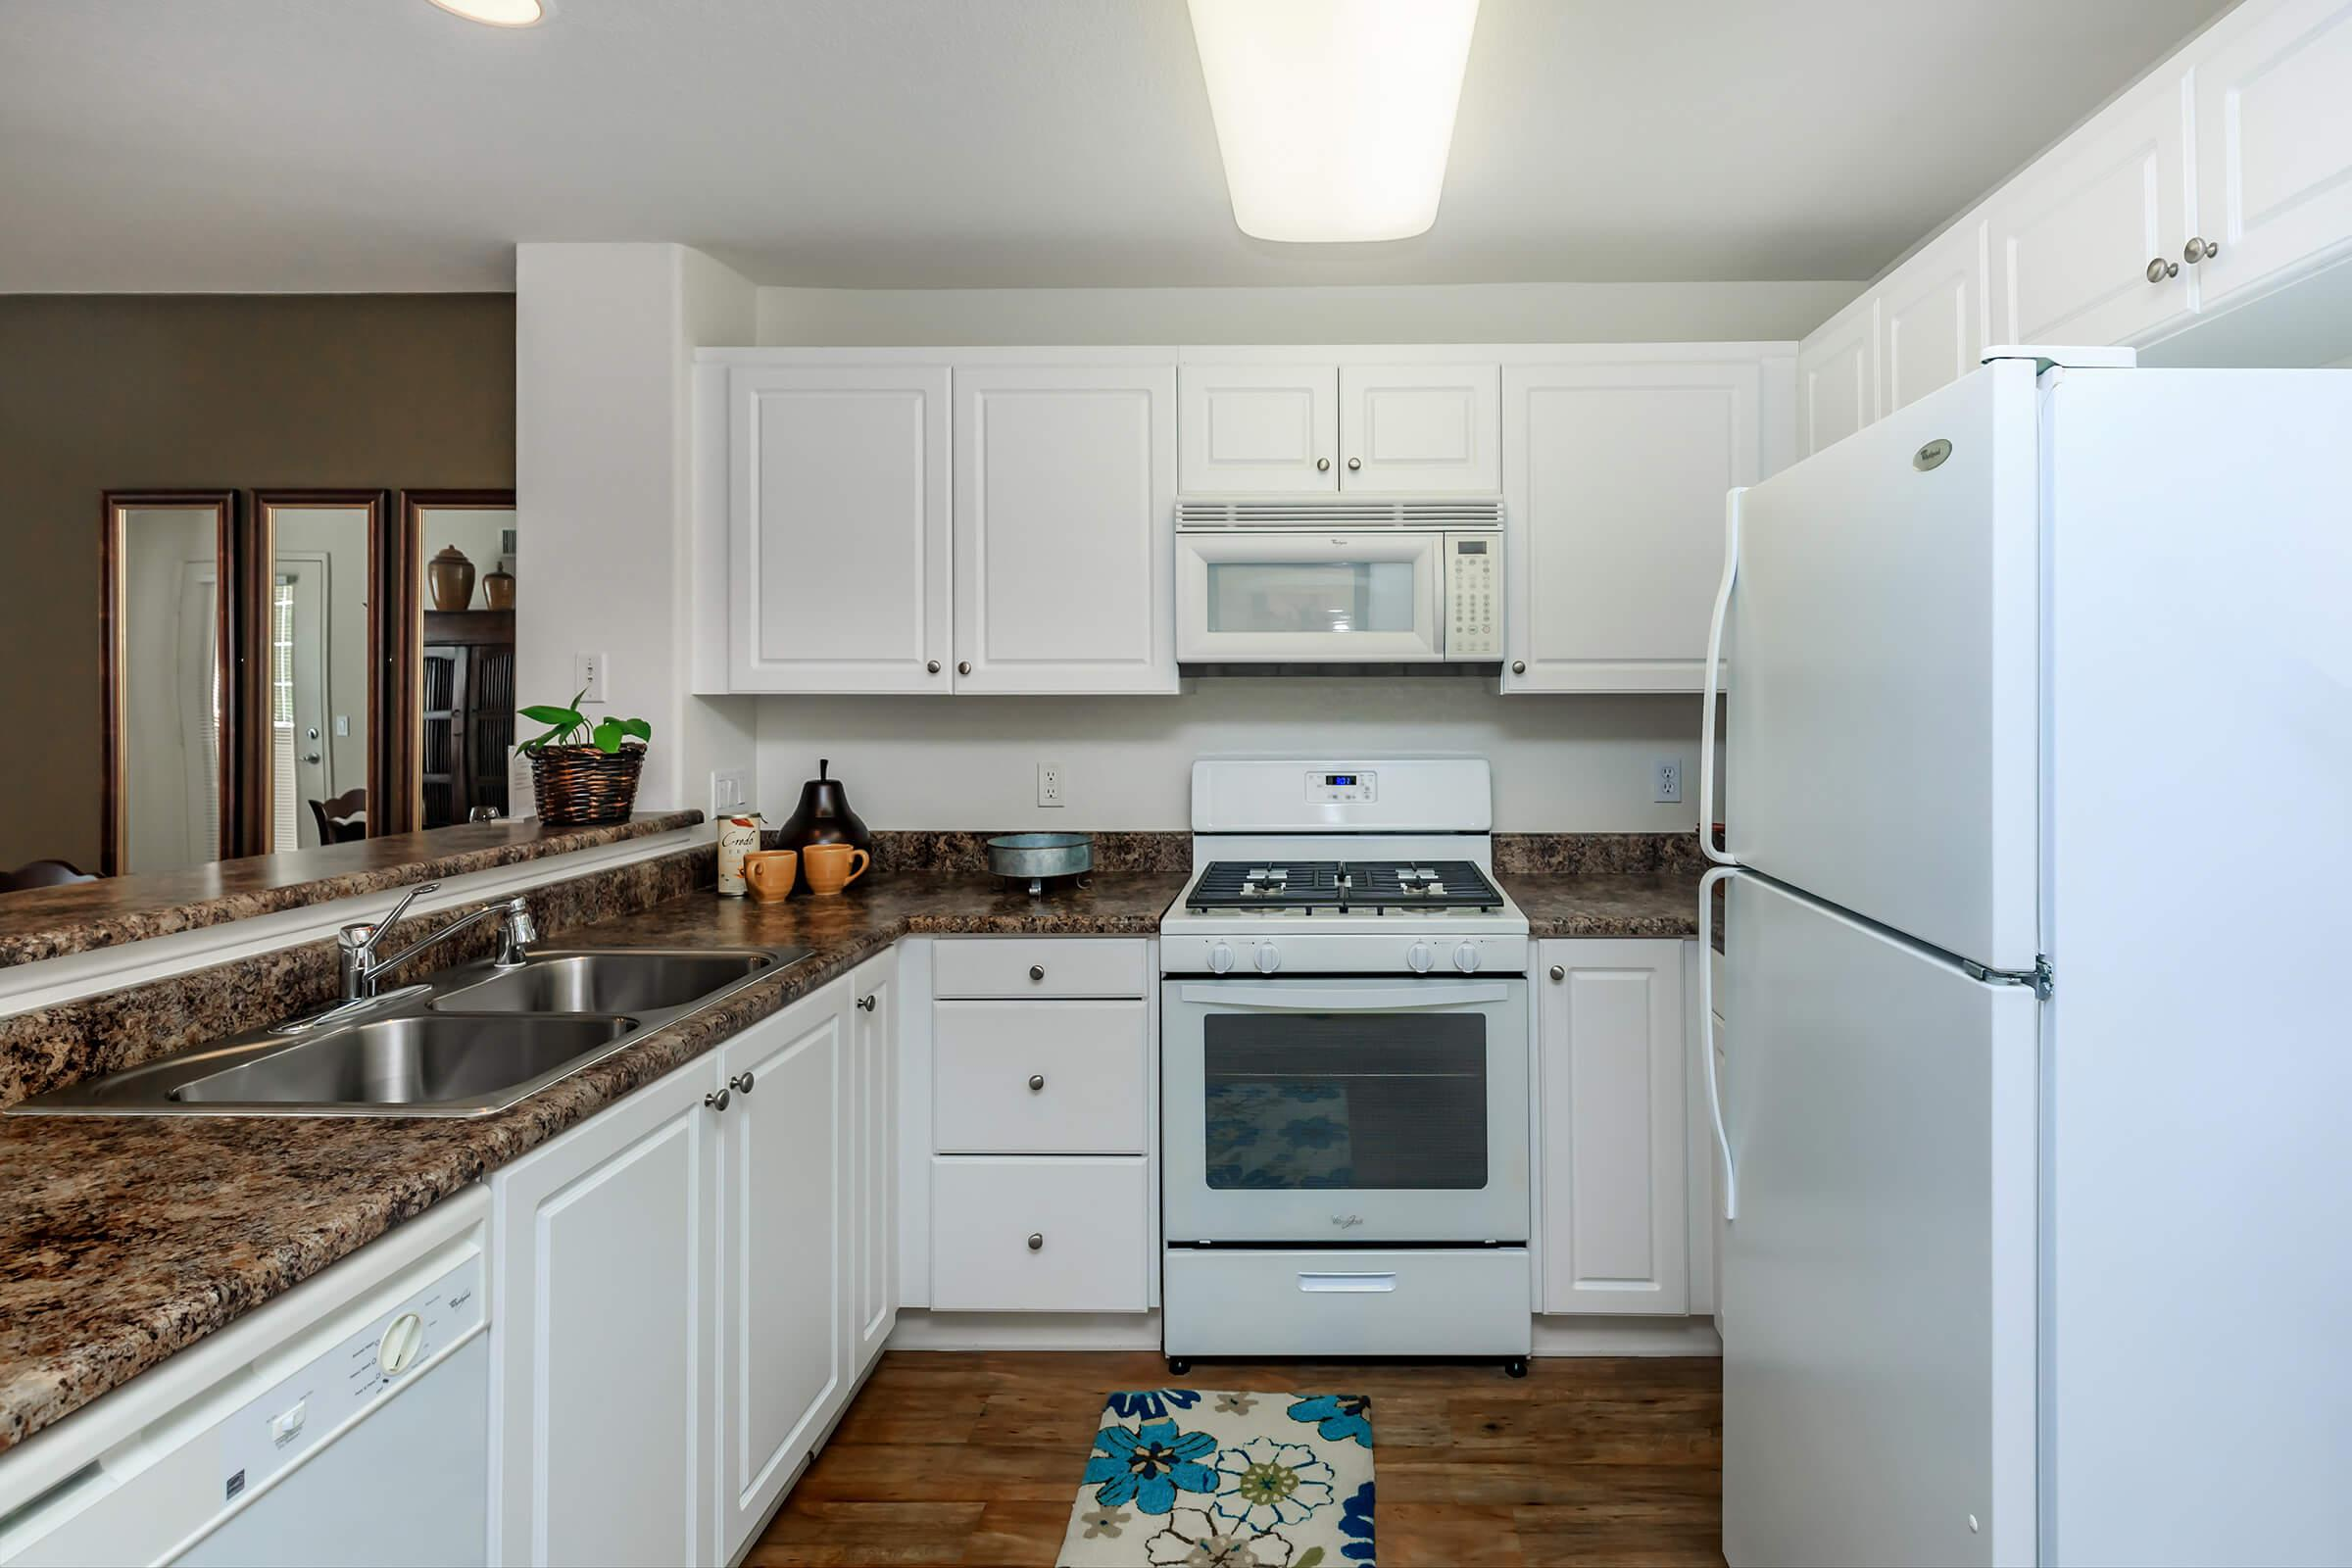 a kitchen with a white stove top oven